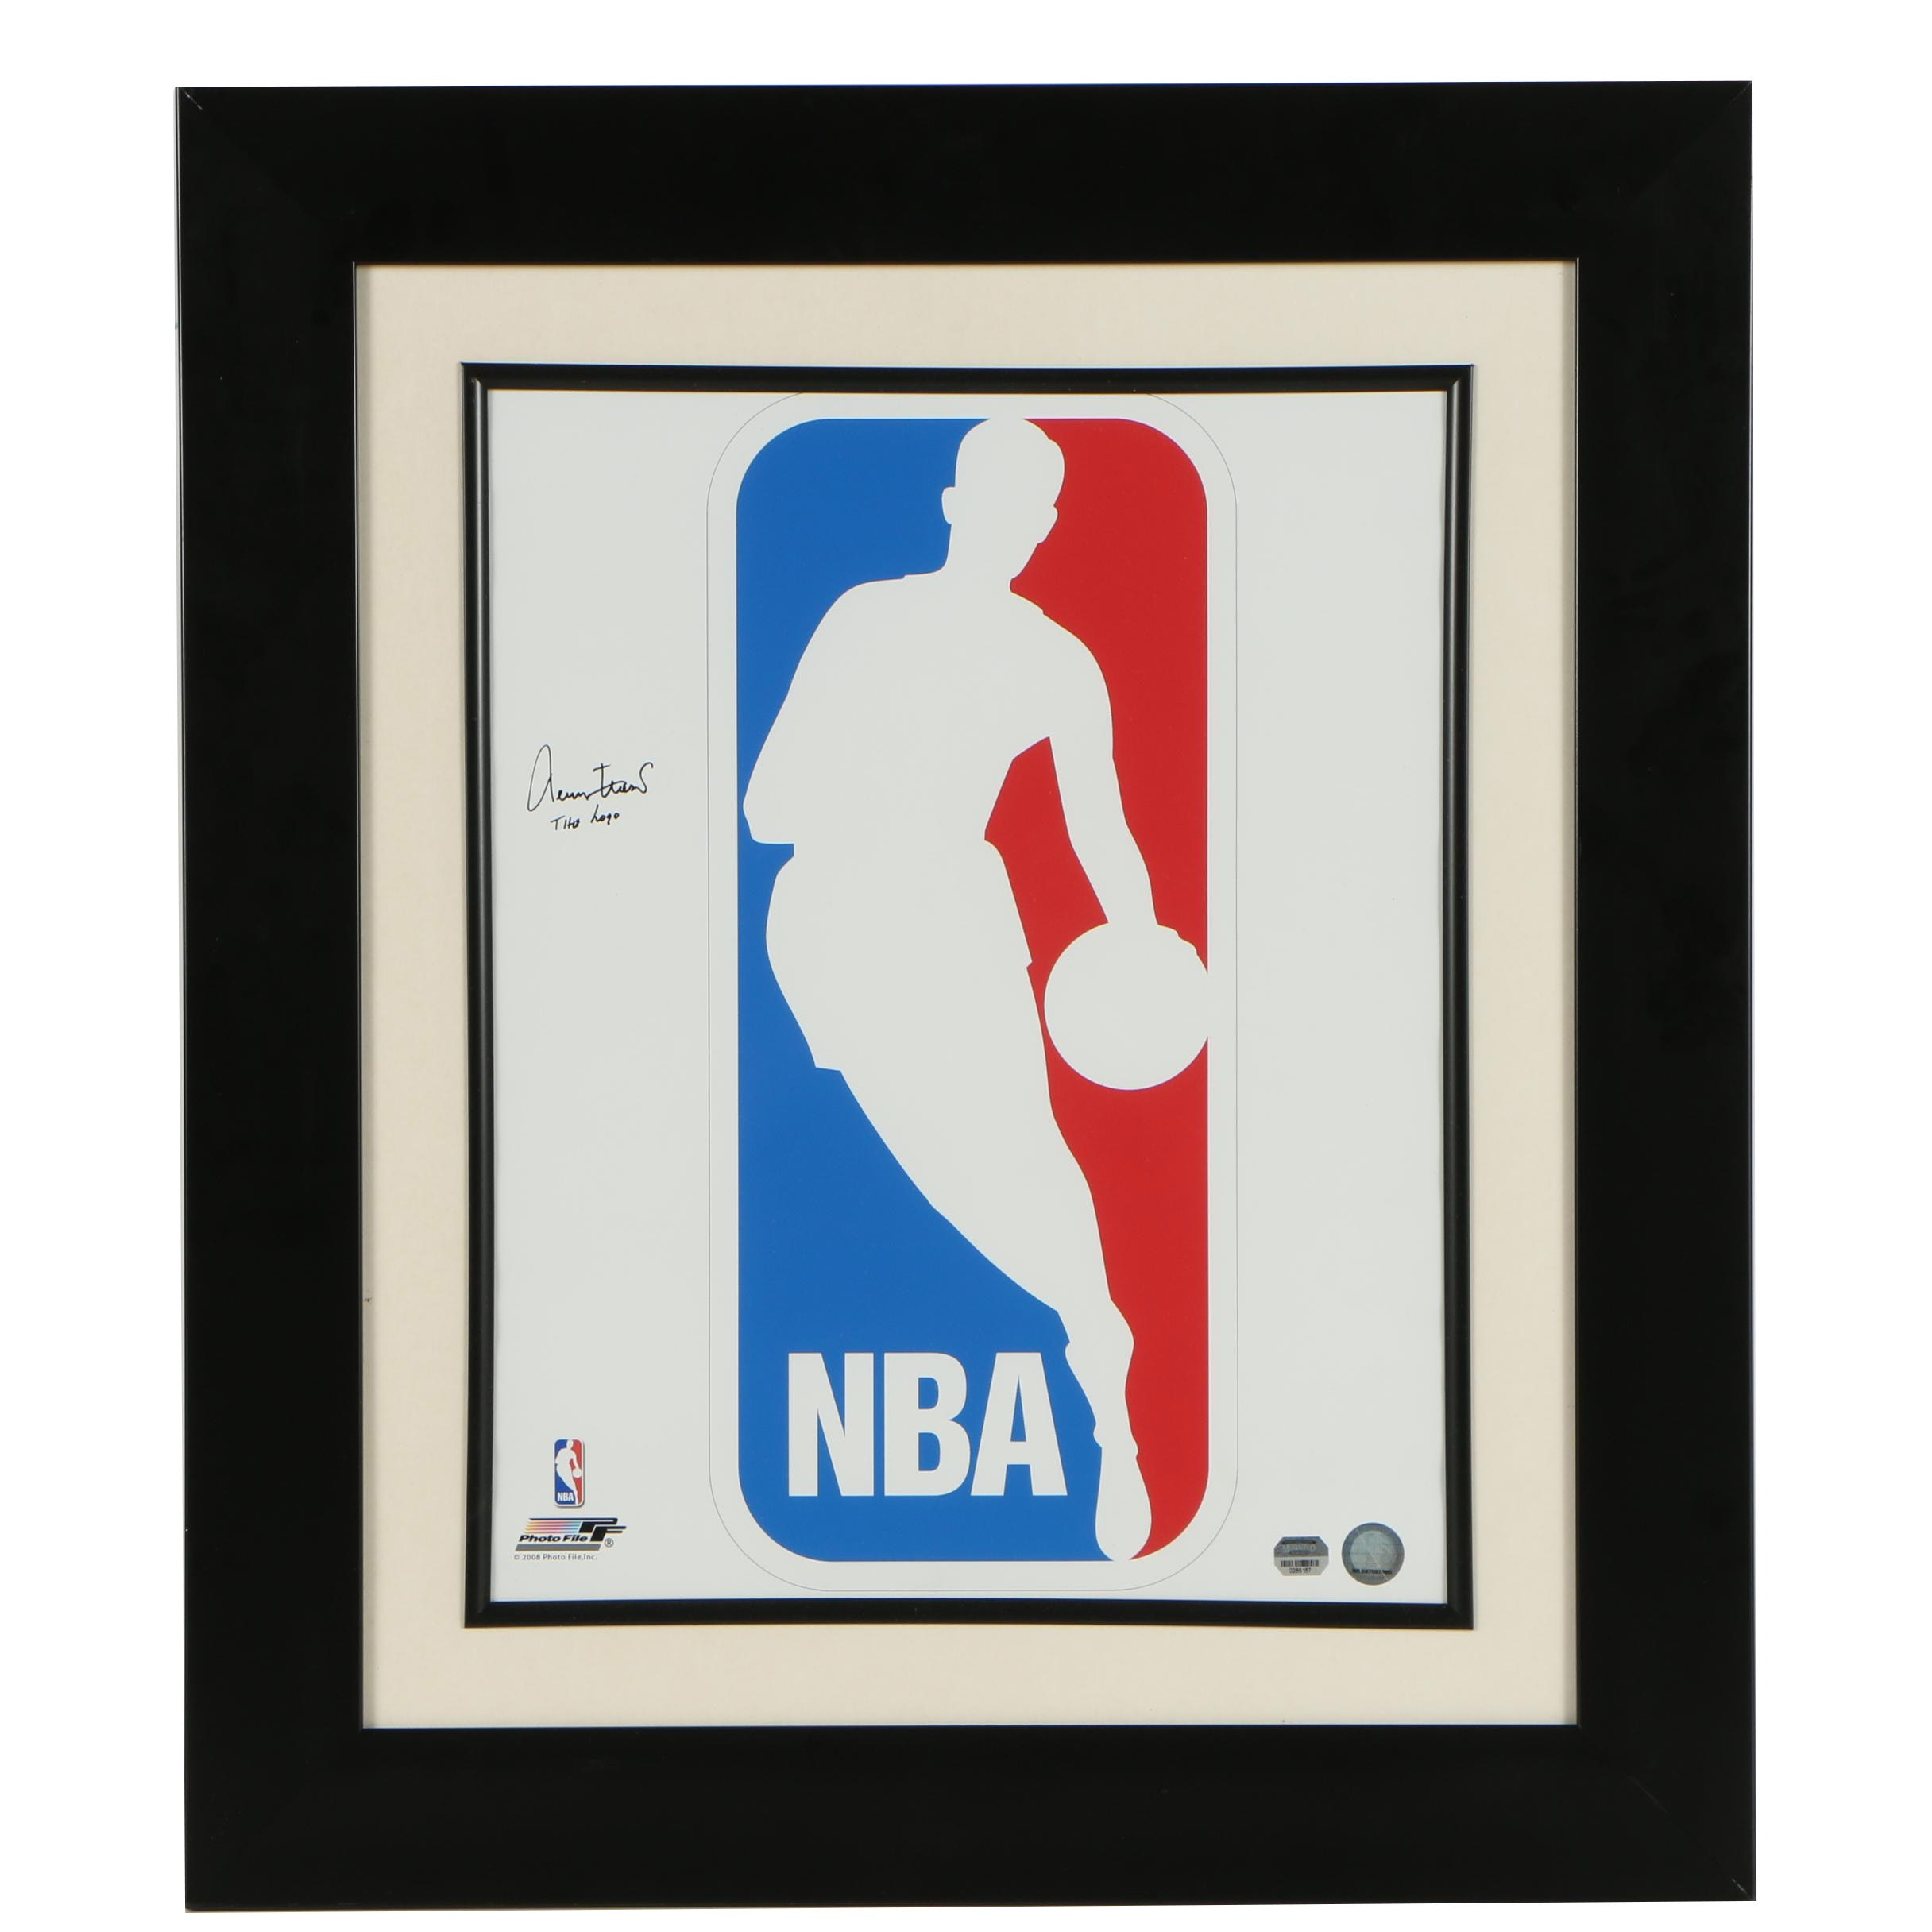 "Jerry West ""The Logo"" Autographed NBA Poster"